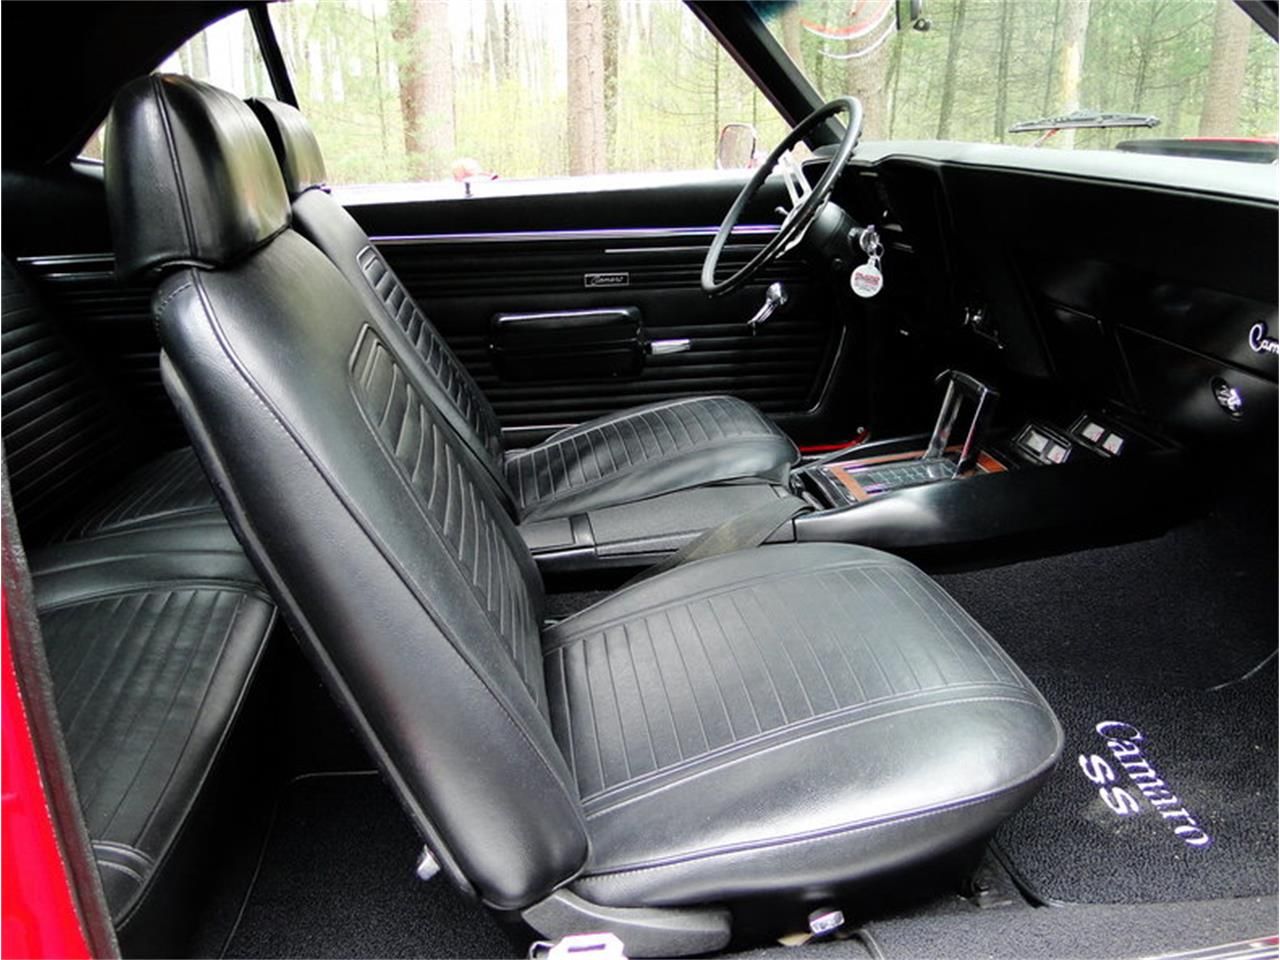 Large Picture of '69 Camaro SS located in Massachusetts - $31,500.00 - L3OK